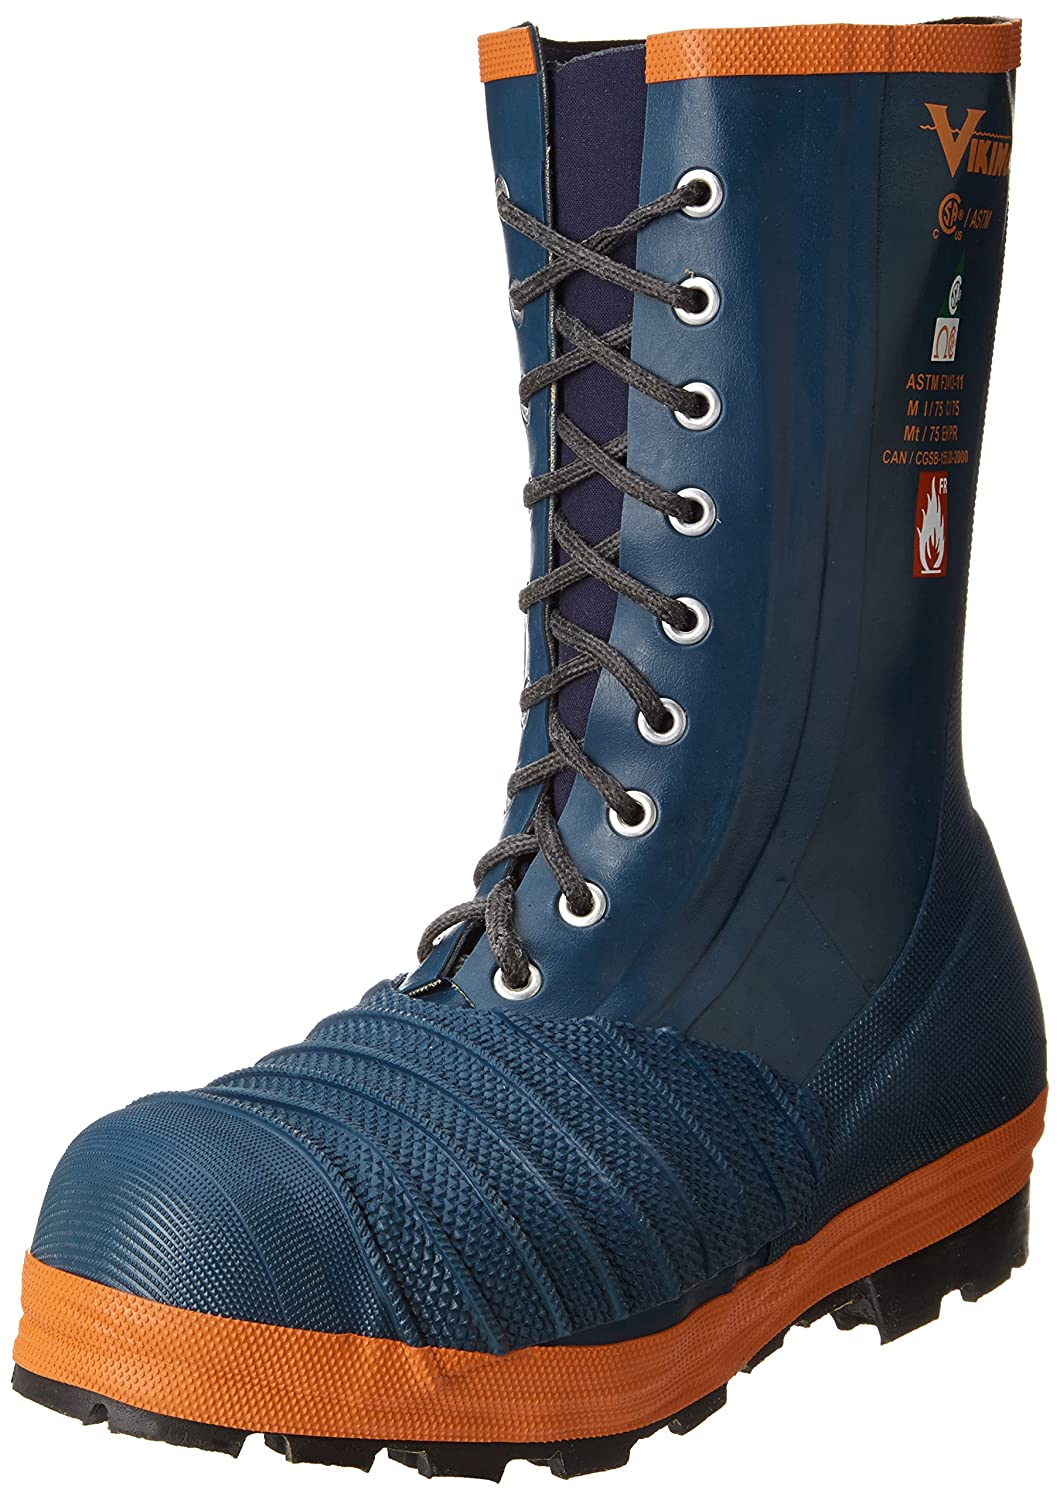 Image of Fire & Safety Viking Footwear Rigger Firewall FR-S/T&P Fire Resistant Boot